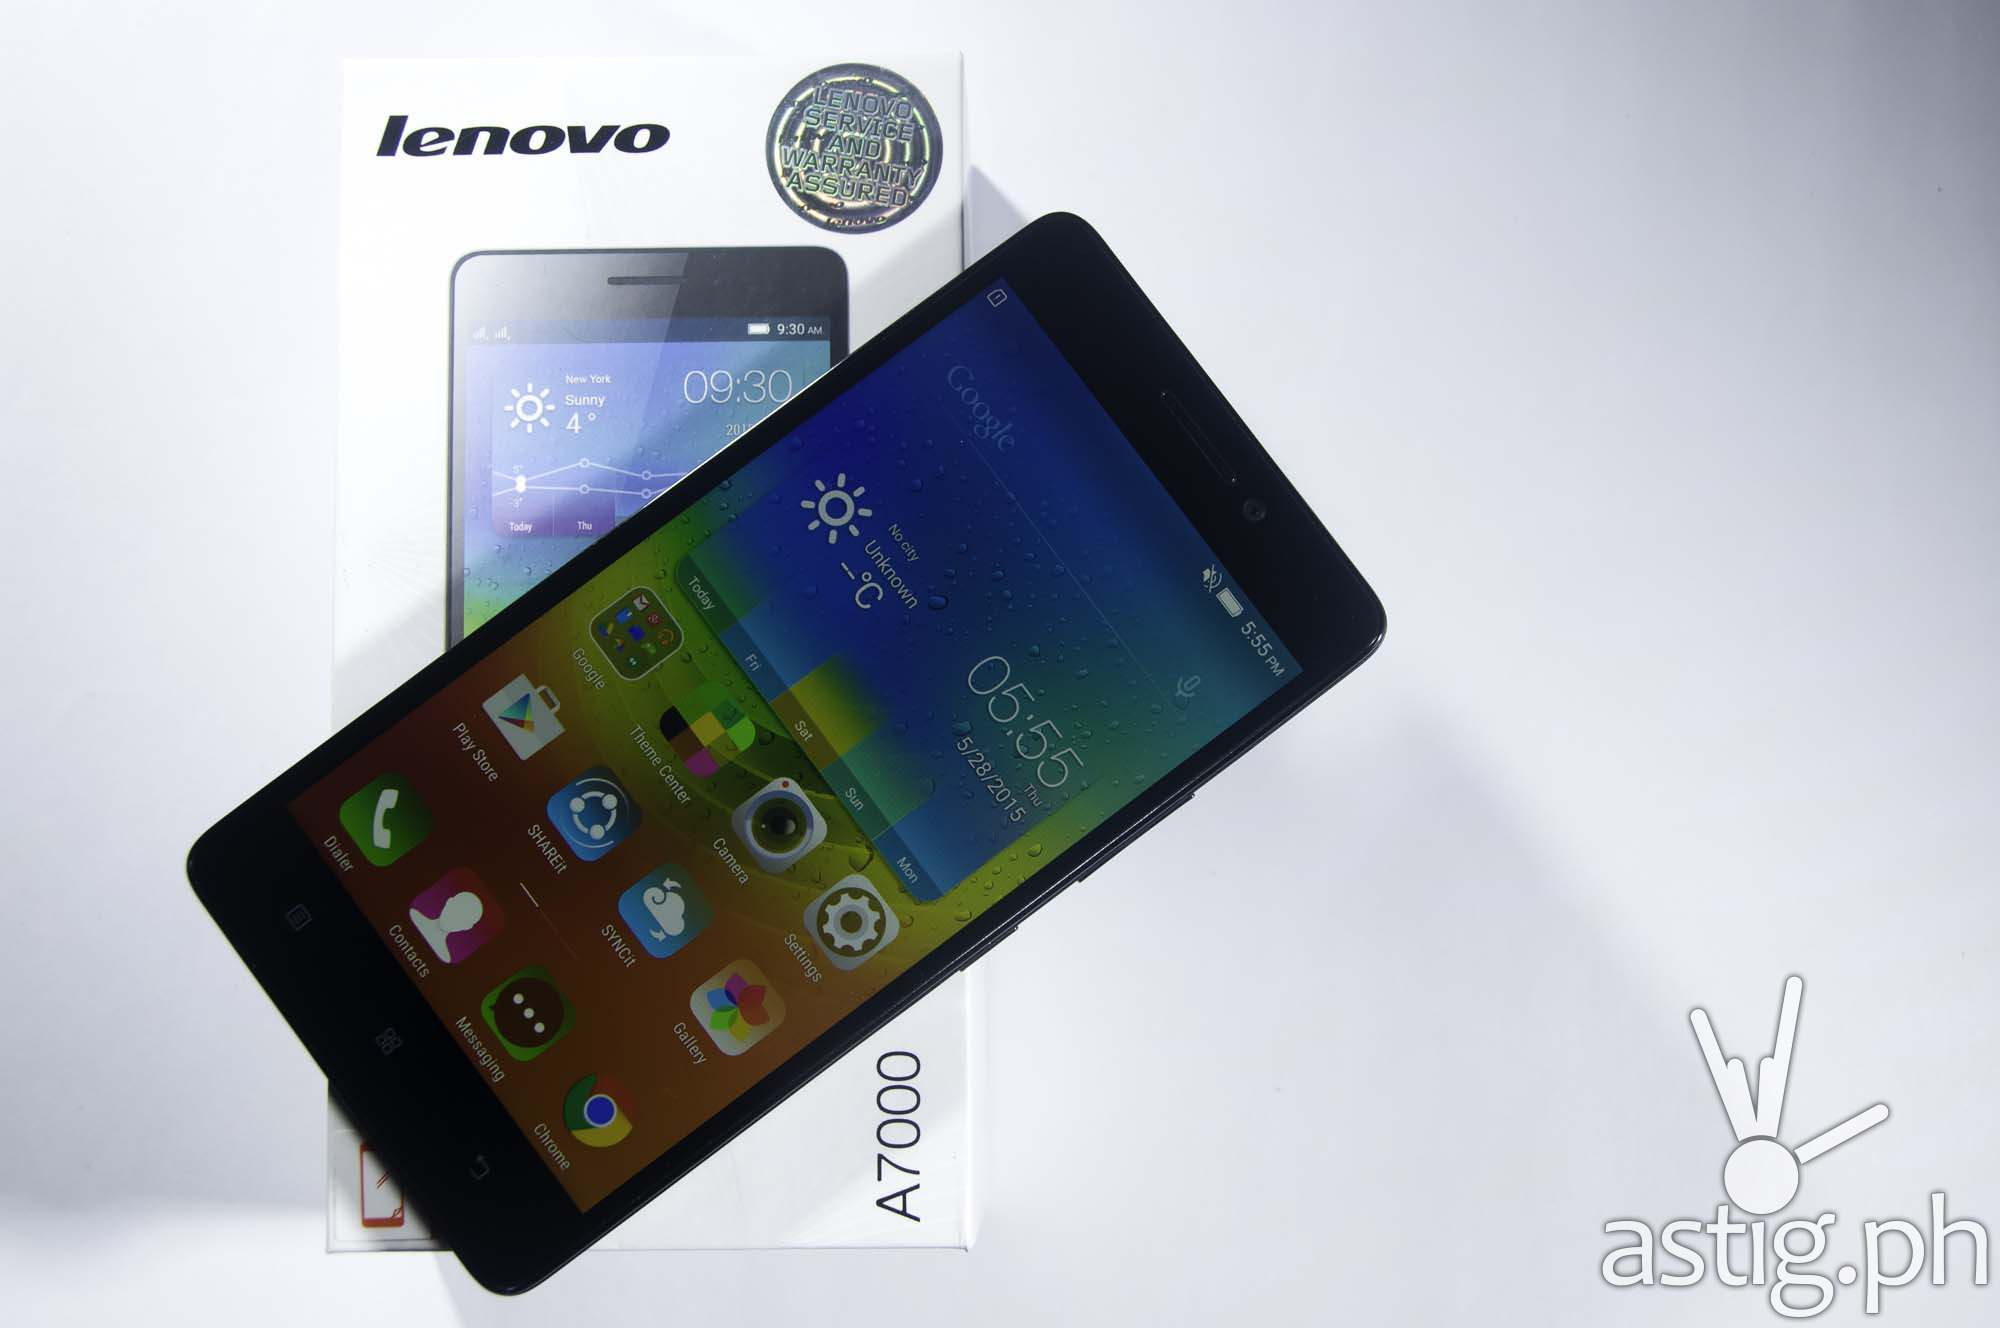 The Lenovo A7000 comes with a vivid 5.5 inch display